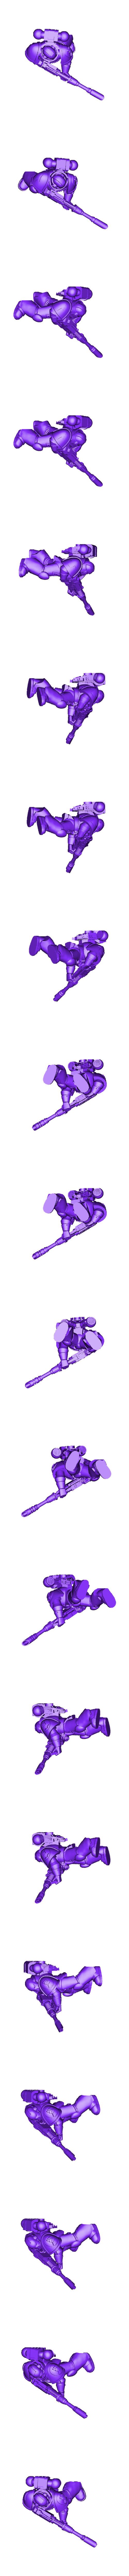 4_Laser.stl Download free STL file Space Soldiers with Fist Symbols • Object to 3D print, PhysUdo